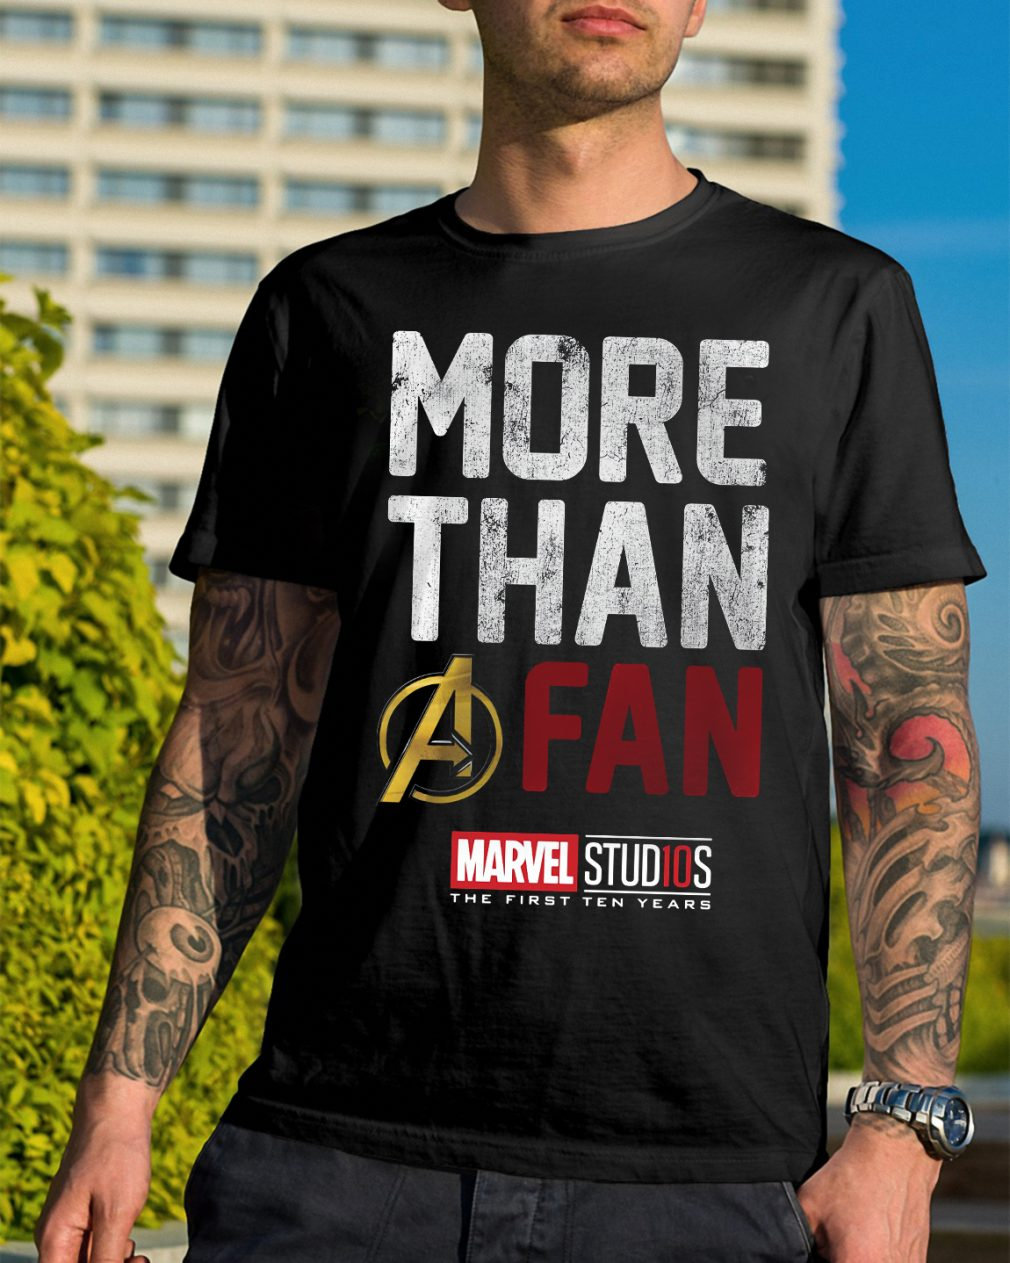 Marvel Studios Ten Years Fan Shirt